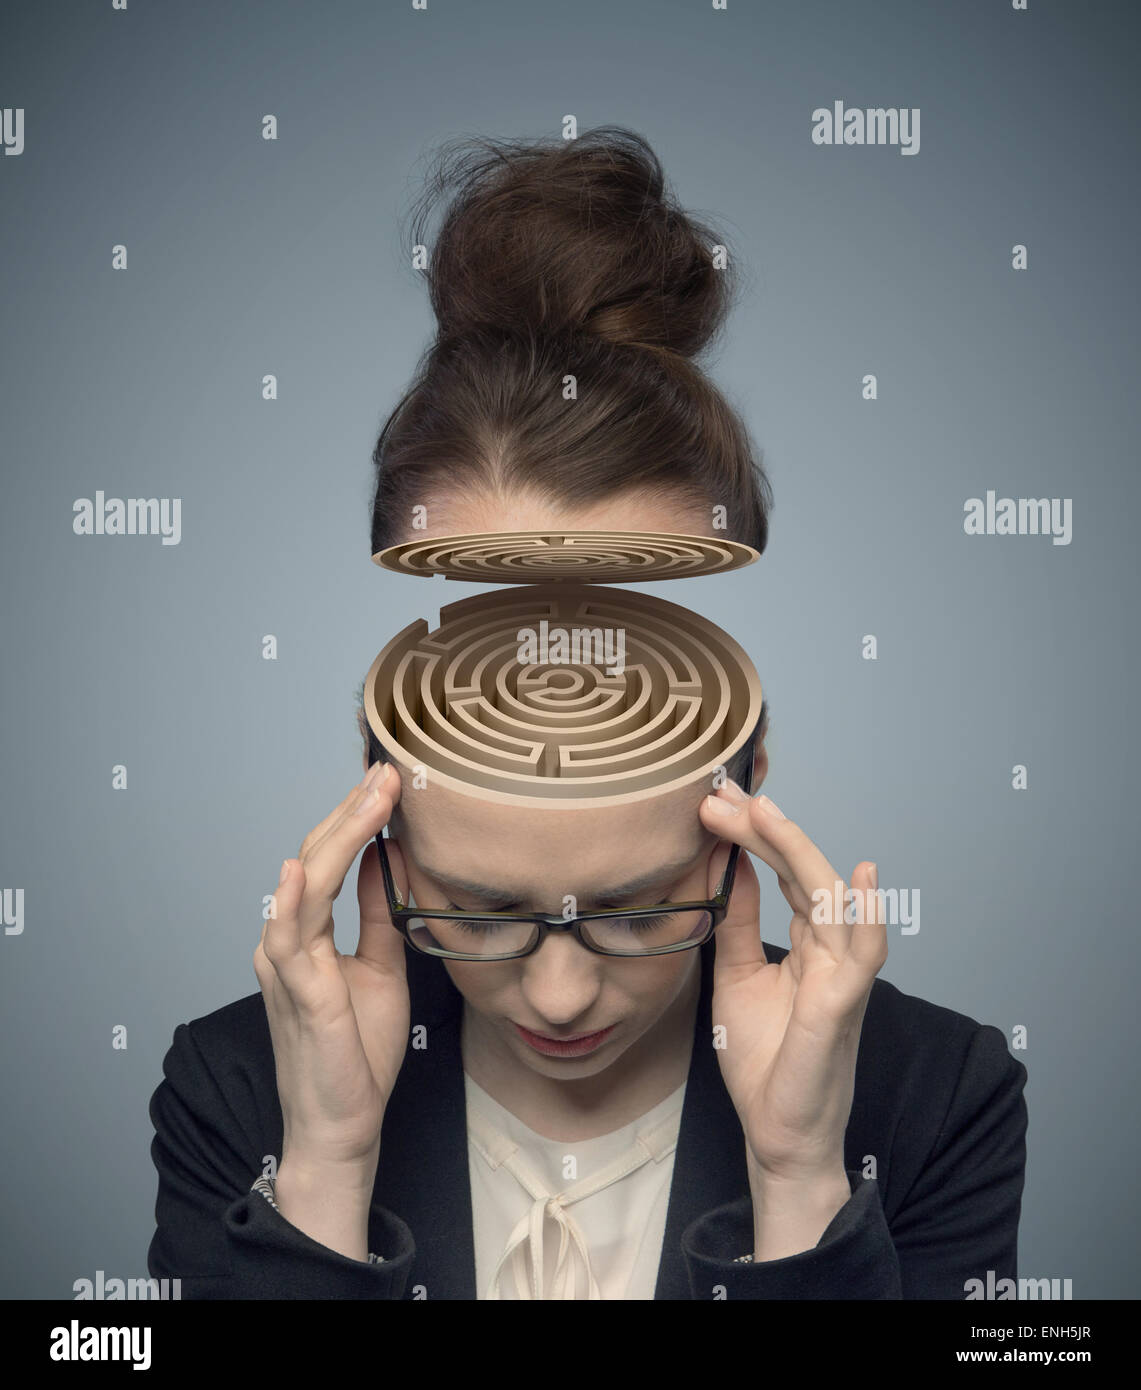 Conceptual image of a labyrinth in the woman's brain Stock Photo